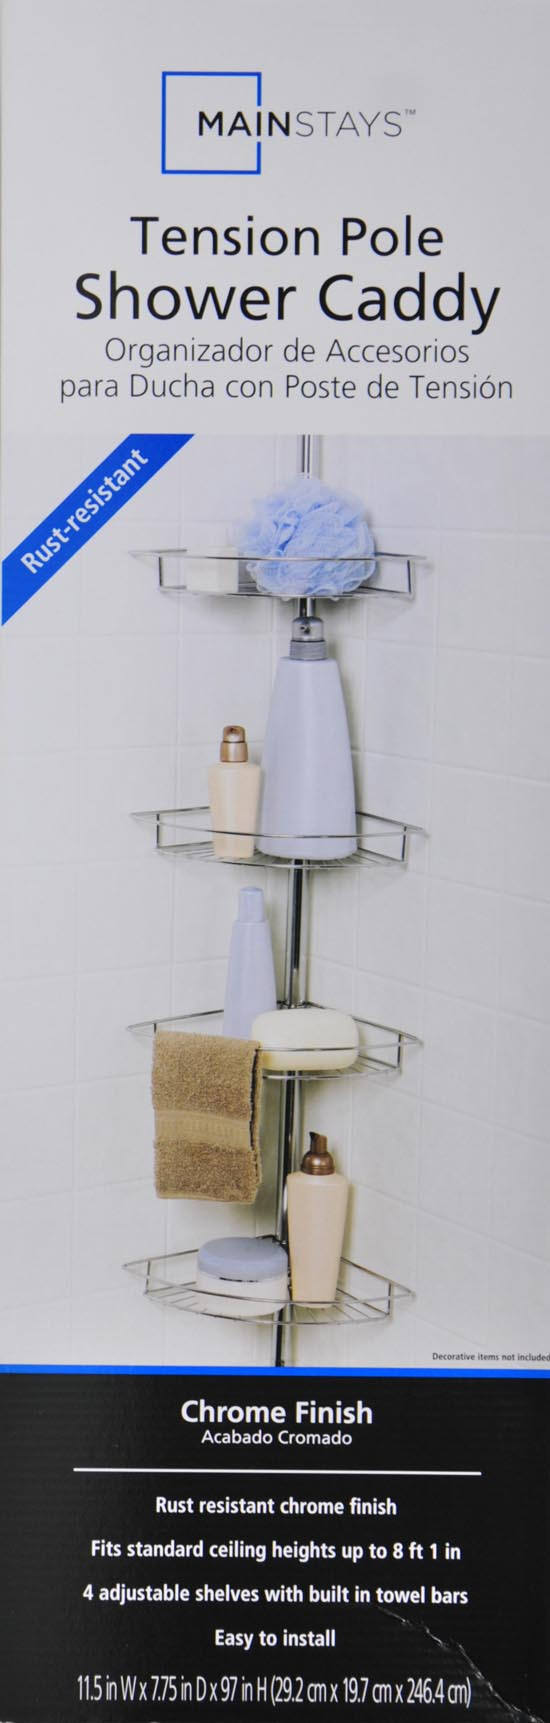 Bathroom Tension Shower Shelf Caddy Chrome By Mainstays 43197140579 ...